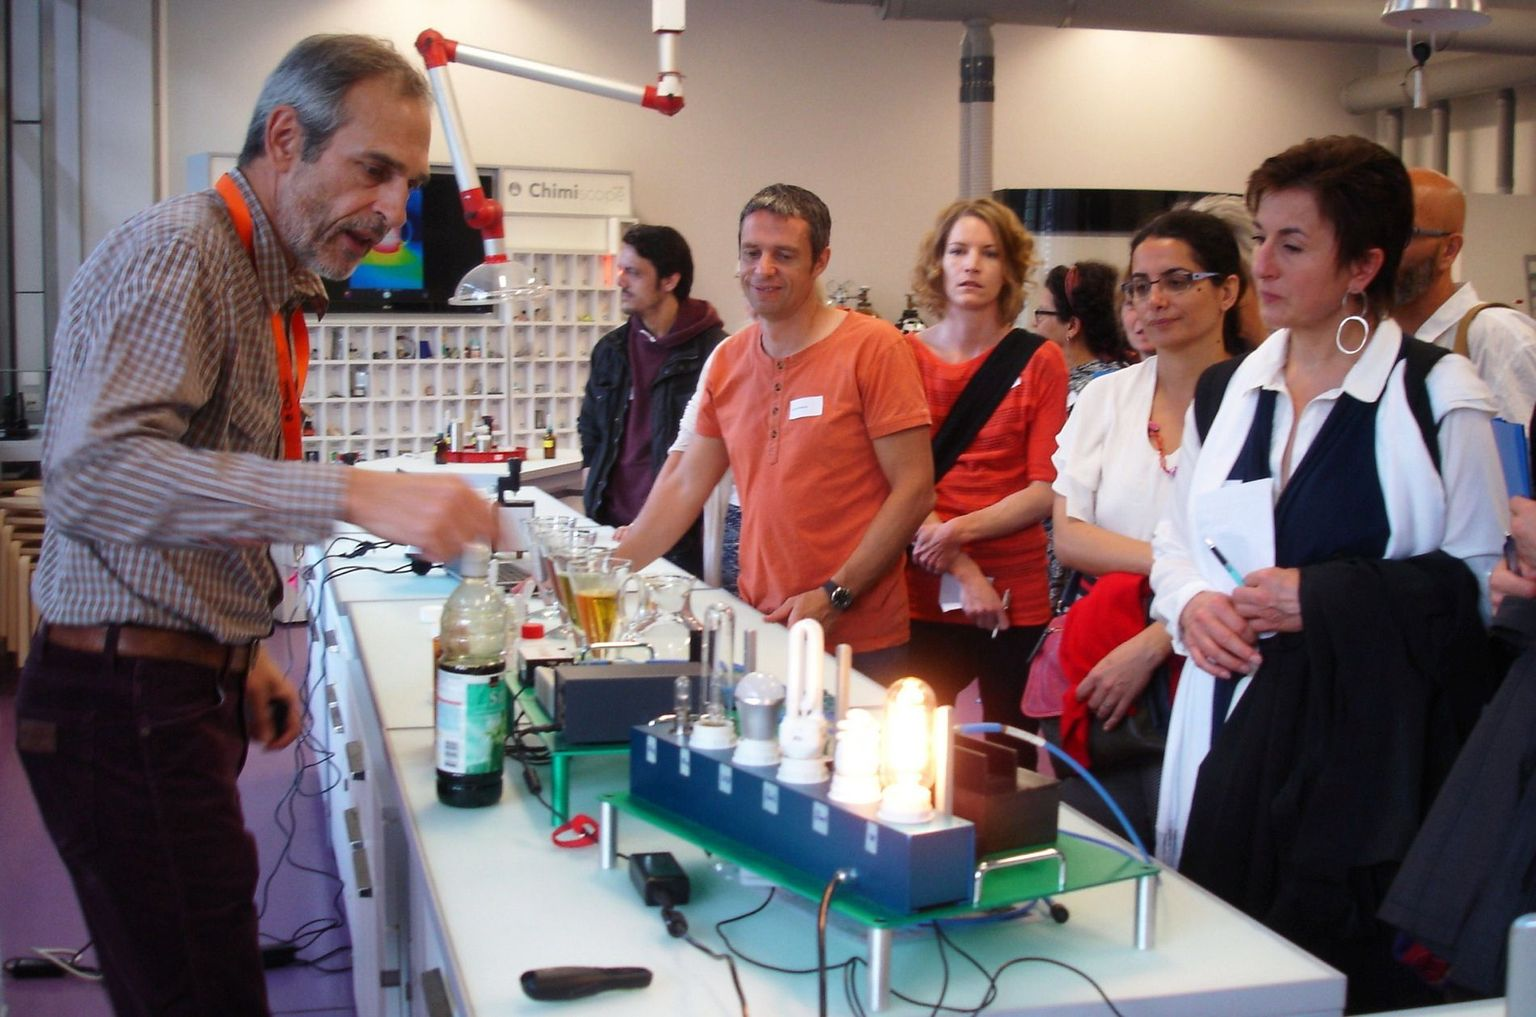 Visite du Chimiscope par les participantes et participants du workshop Science on Stage Switzerland